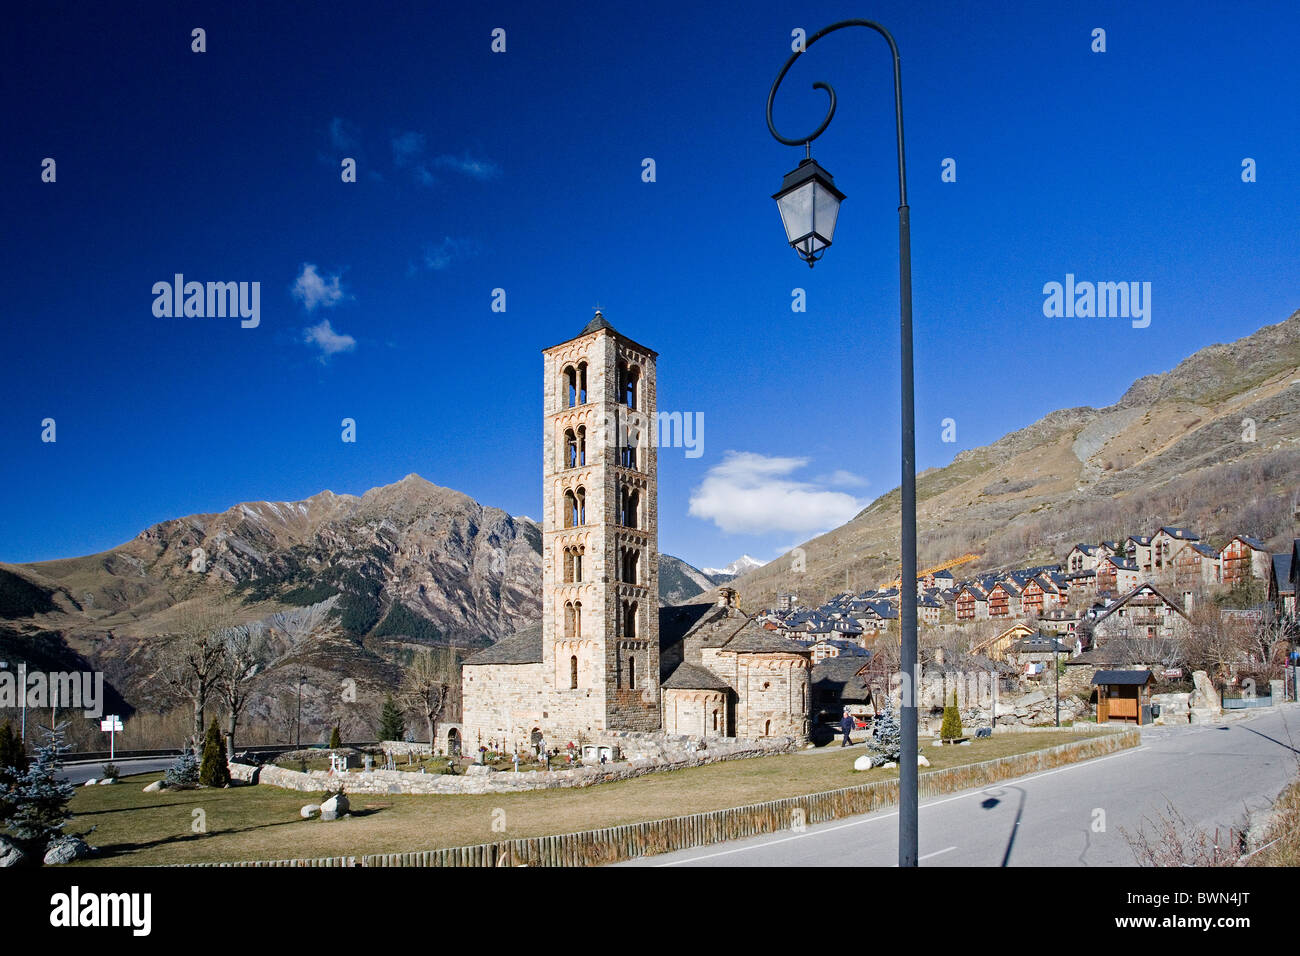 Spain Europe Catalonia Region Sant Climent de Taull church Vall de Boi Romanesque architecture old historic c - Stock Image